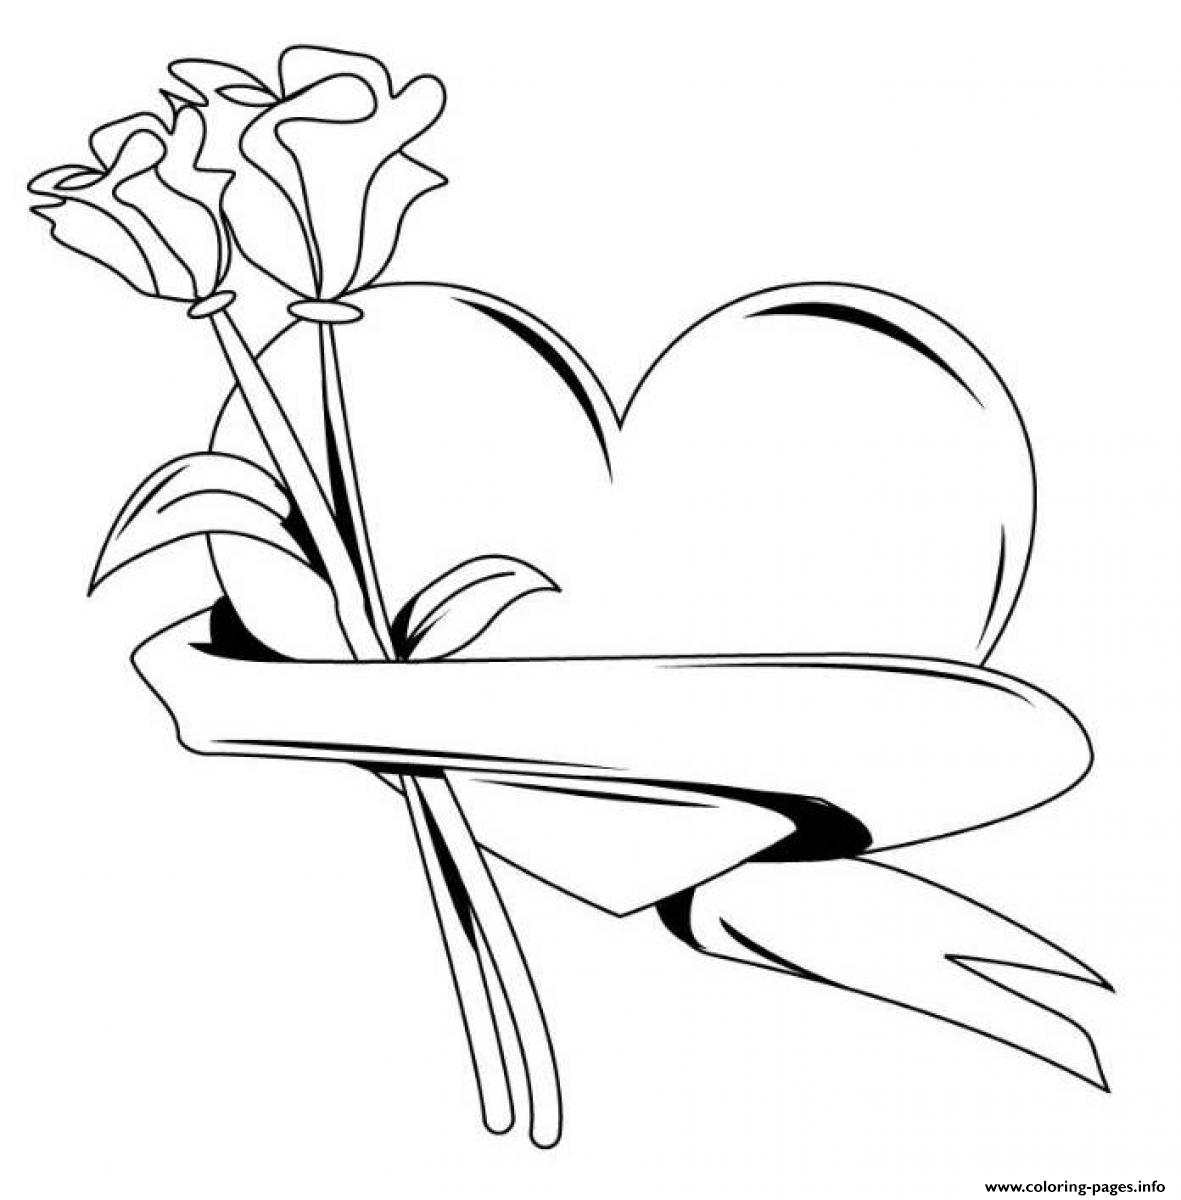 coloring hearts and roses free printable heart coloring pages for kids coloring roses hearts and